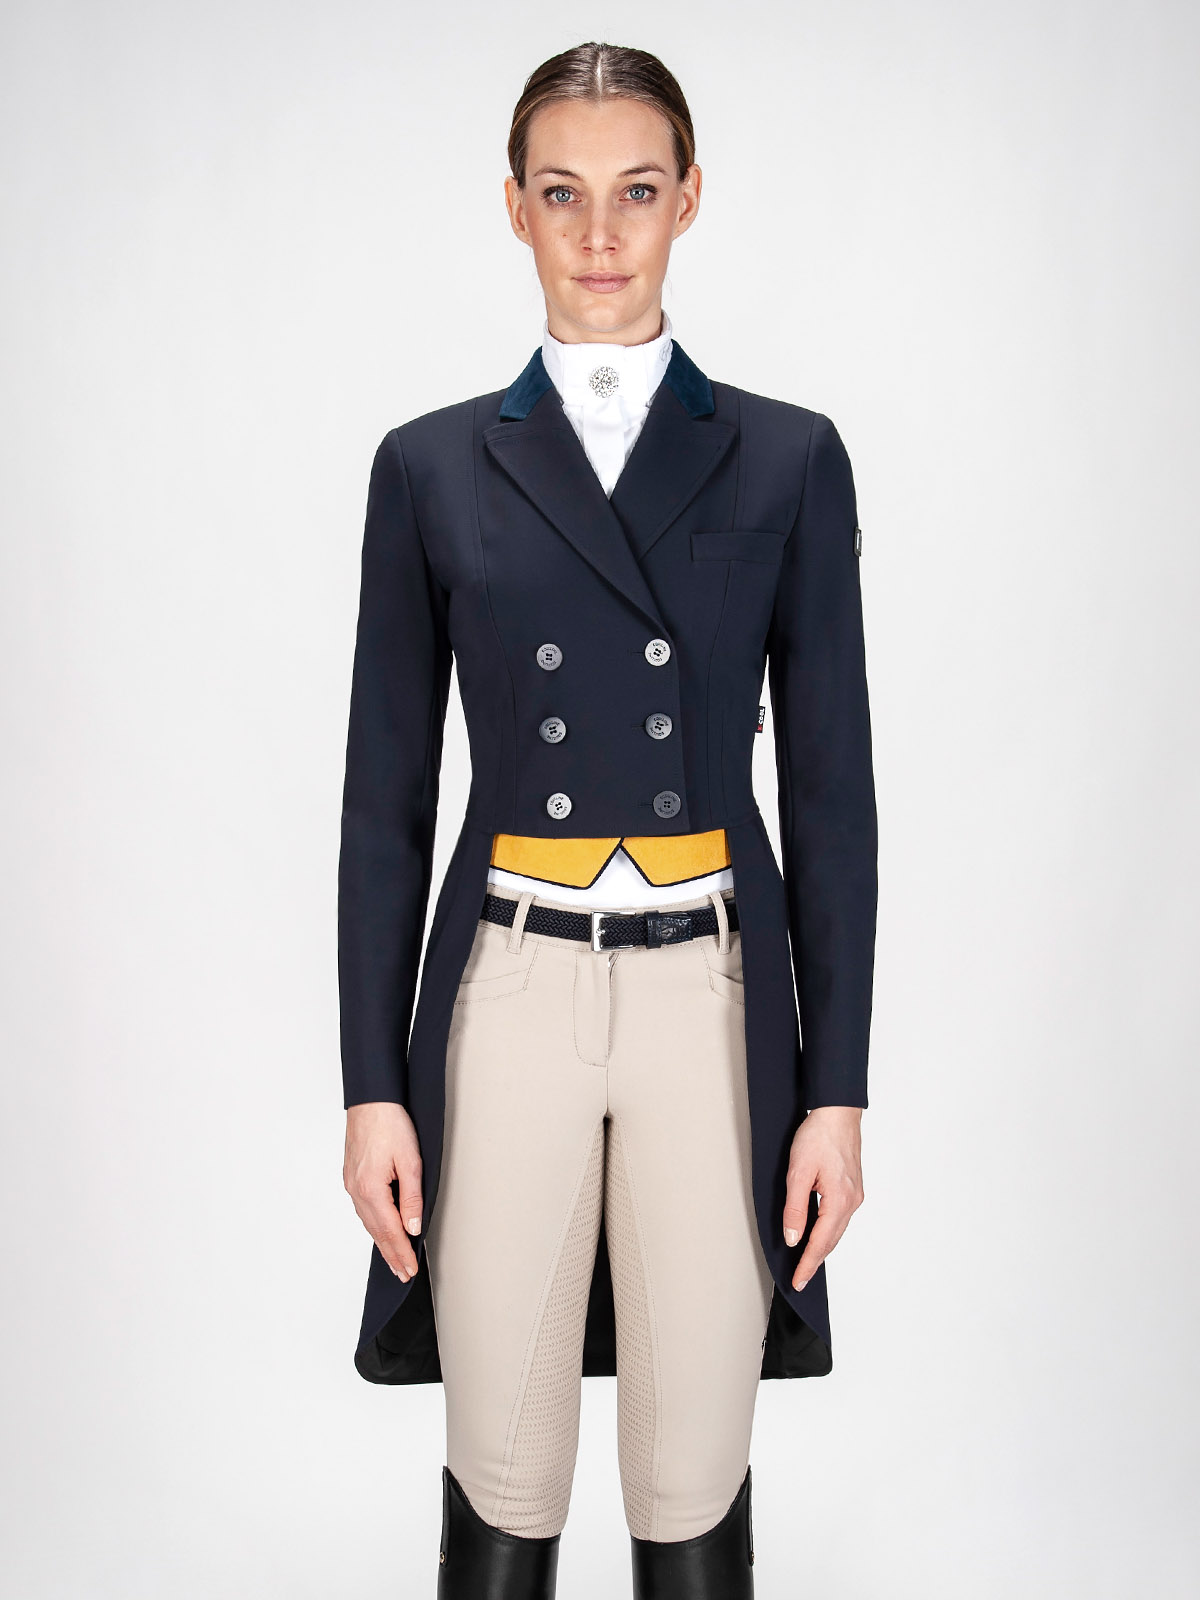 MACKENZIE - Women's Hunter Shadbelly 3